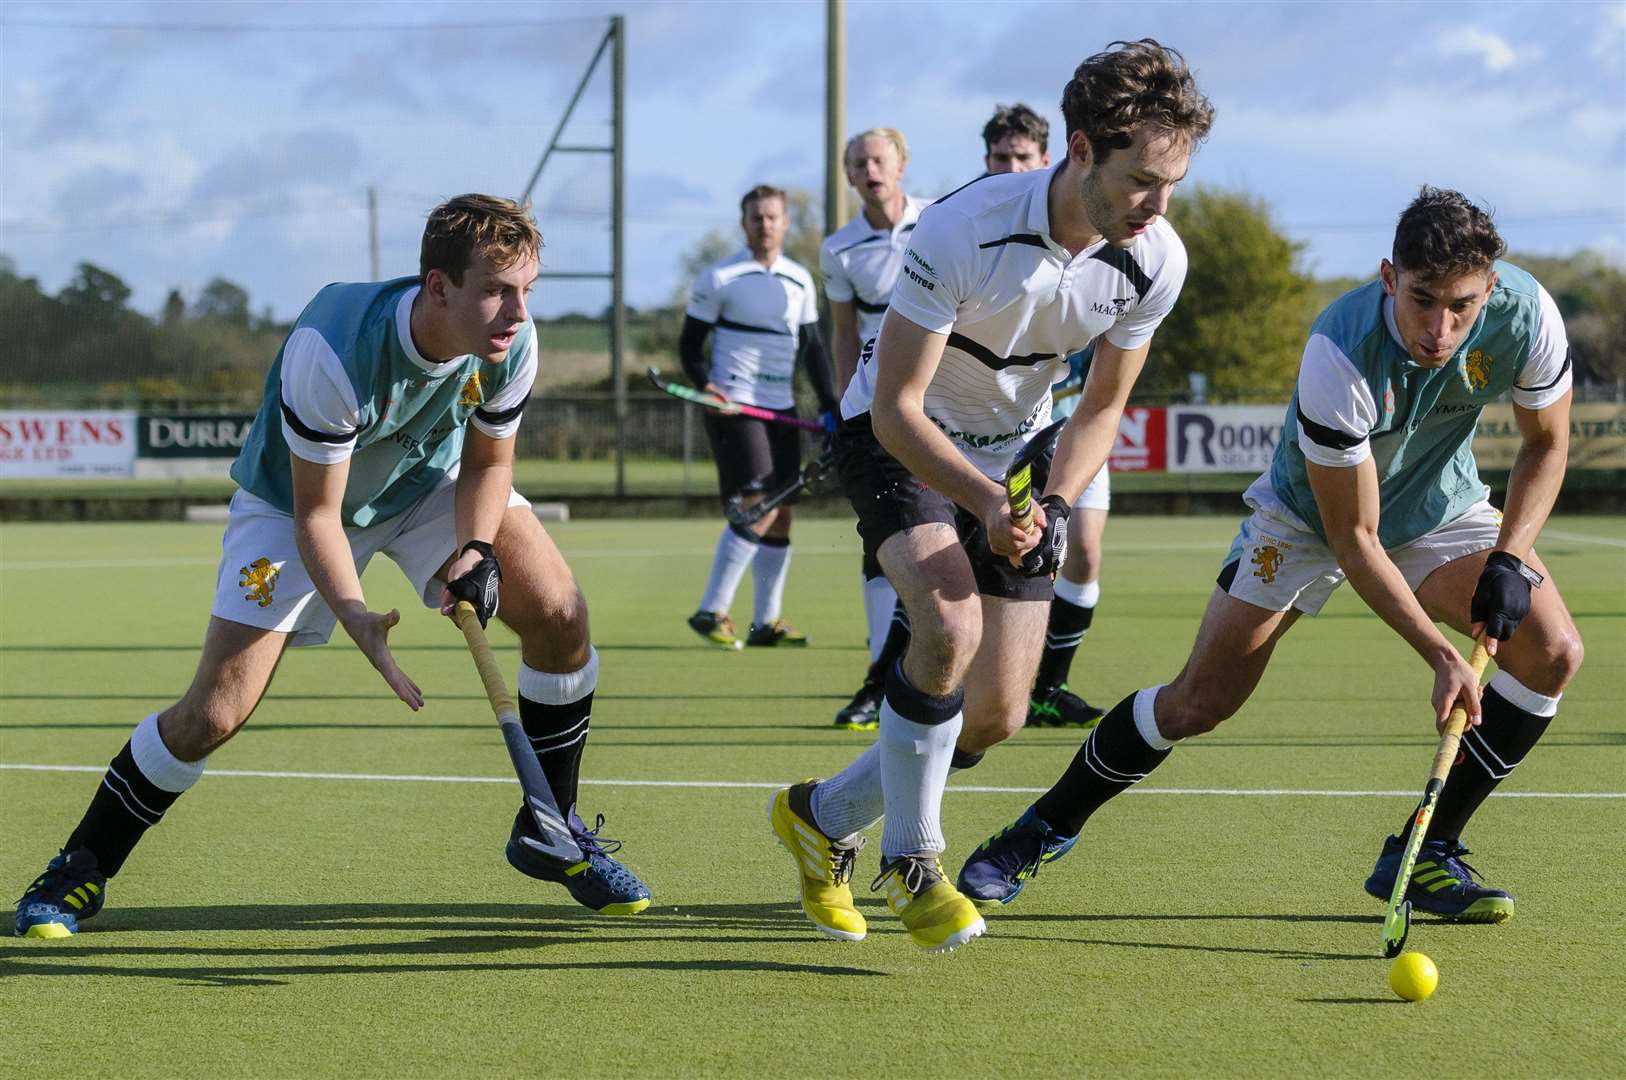 Weybread, Suffolk, UK, 27 October 2018..Hockey action from Harleston Men's 1 v Cambridge University...Picture: Mark Bullimore Photography. (5053023)